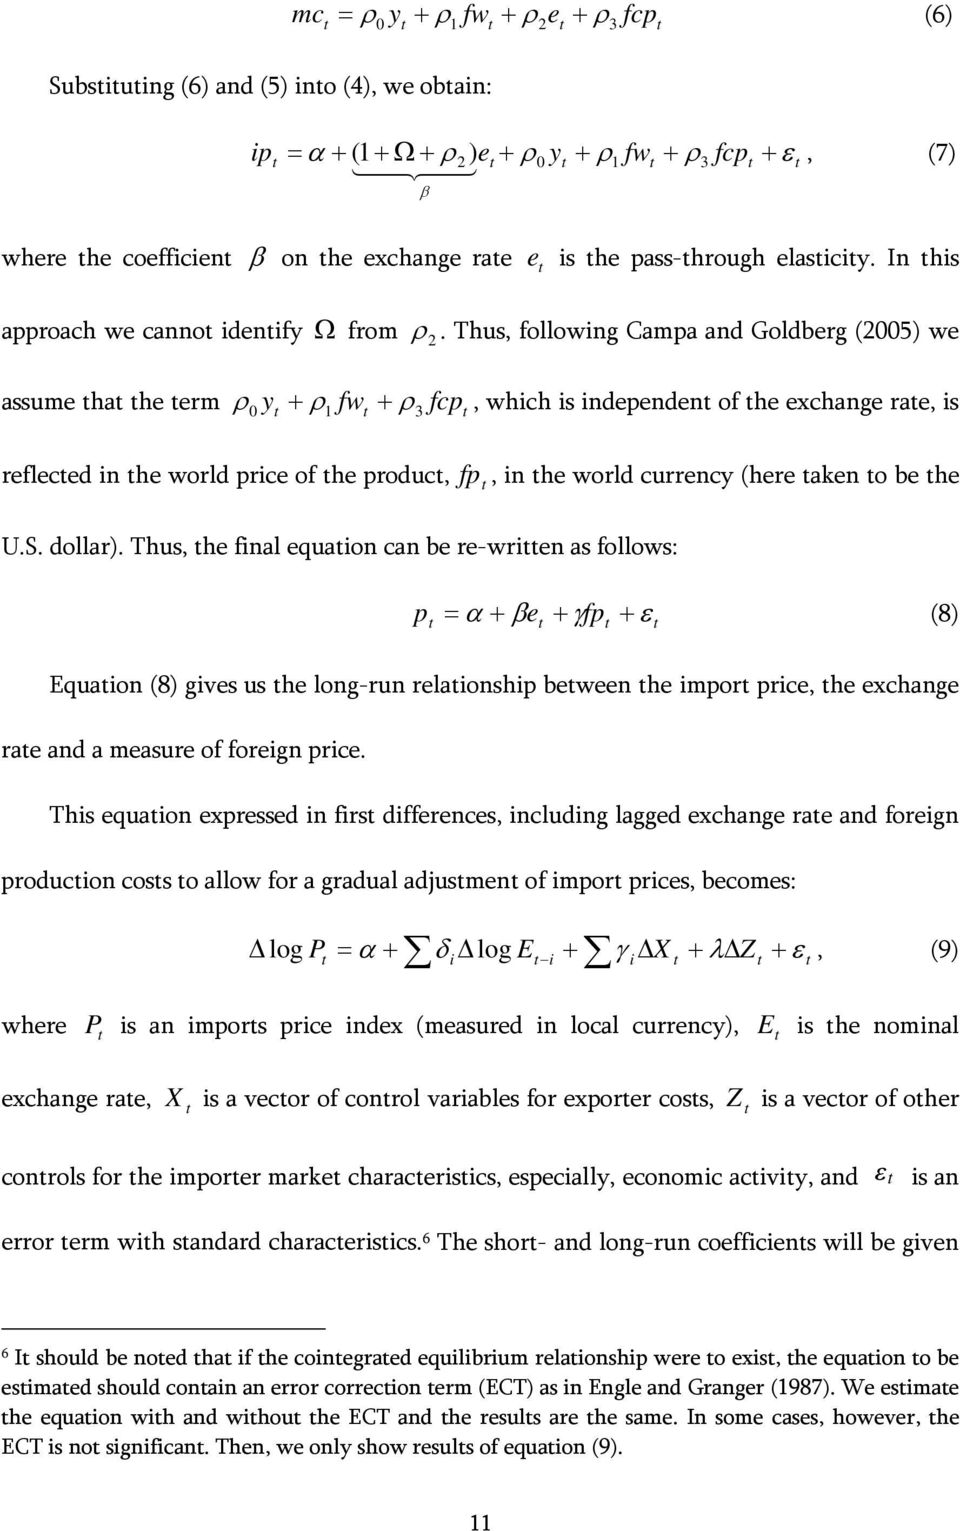 Thus, following Campa and Goldberg (2005) we assume ha he erm ρ + + fcp, which is independen of he exchange rae, is 0 y ρ1 fw ρ3 refleced in he world price of he produc, U.S. dollar).